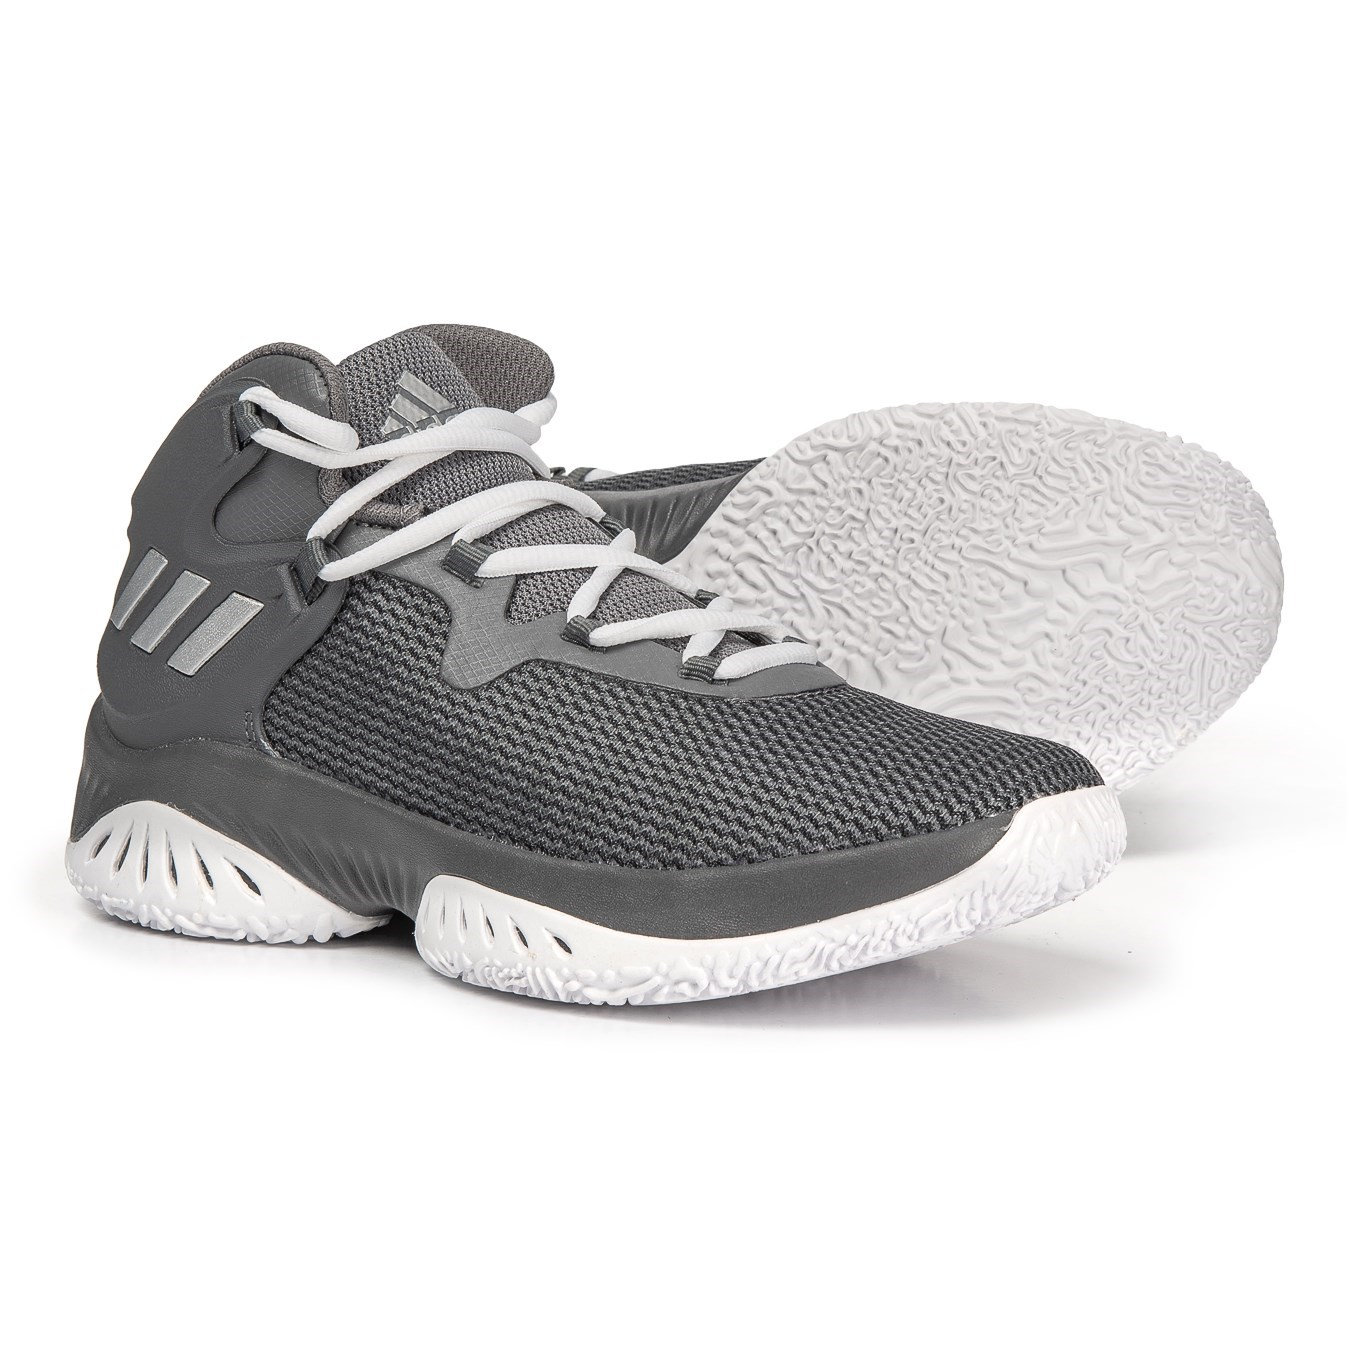 3f4f501638445 adidas Explosive BOUNCE J Basketball Shoes (For Big Kids) in Grey  Four Silver ...